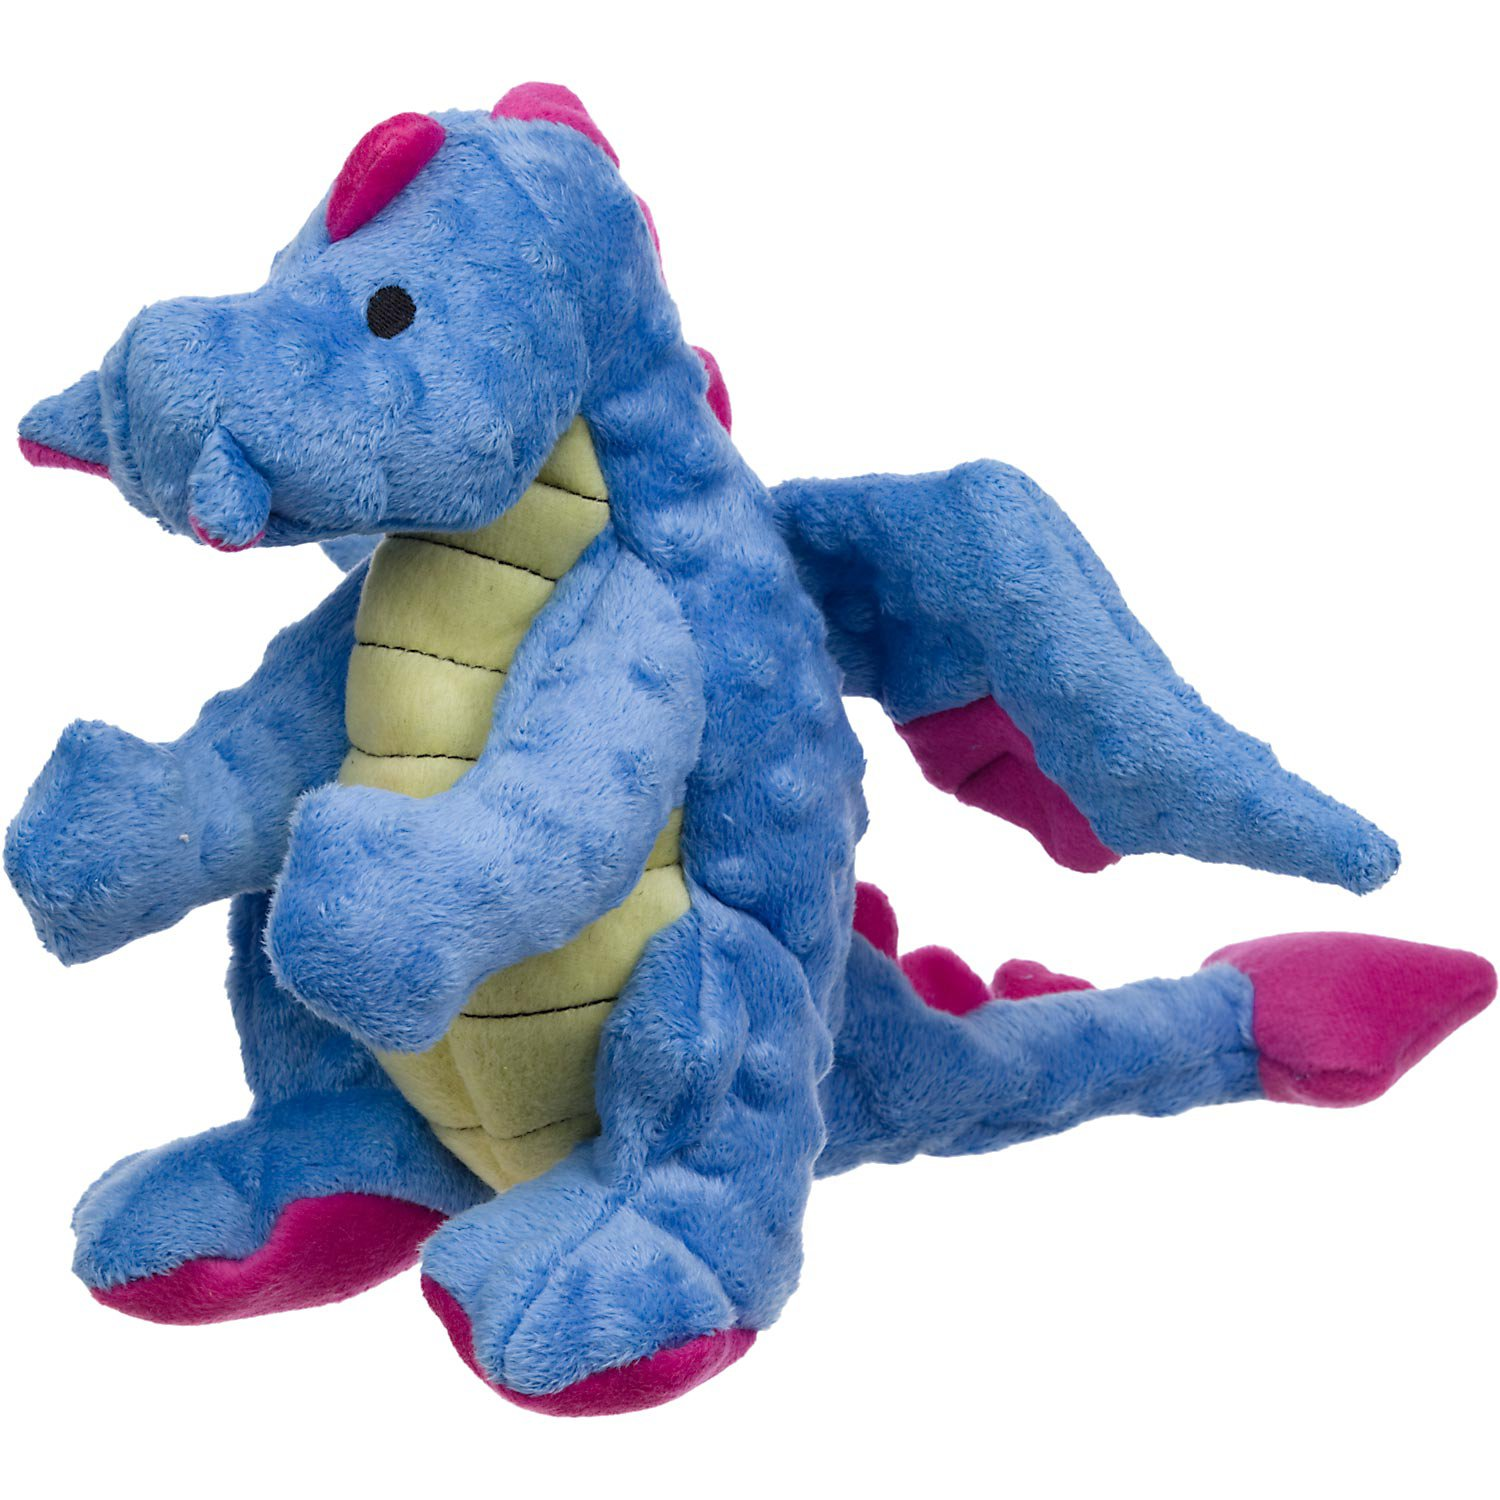 goDog Plush Dragon Dog Toy